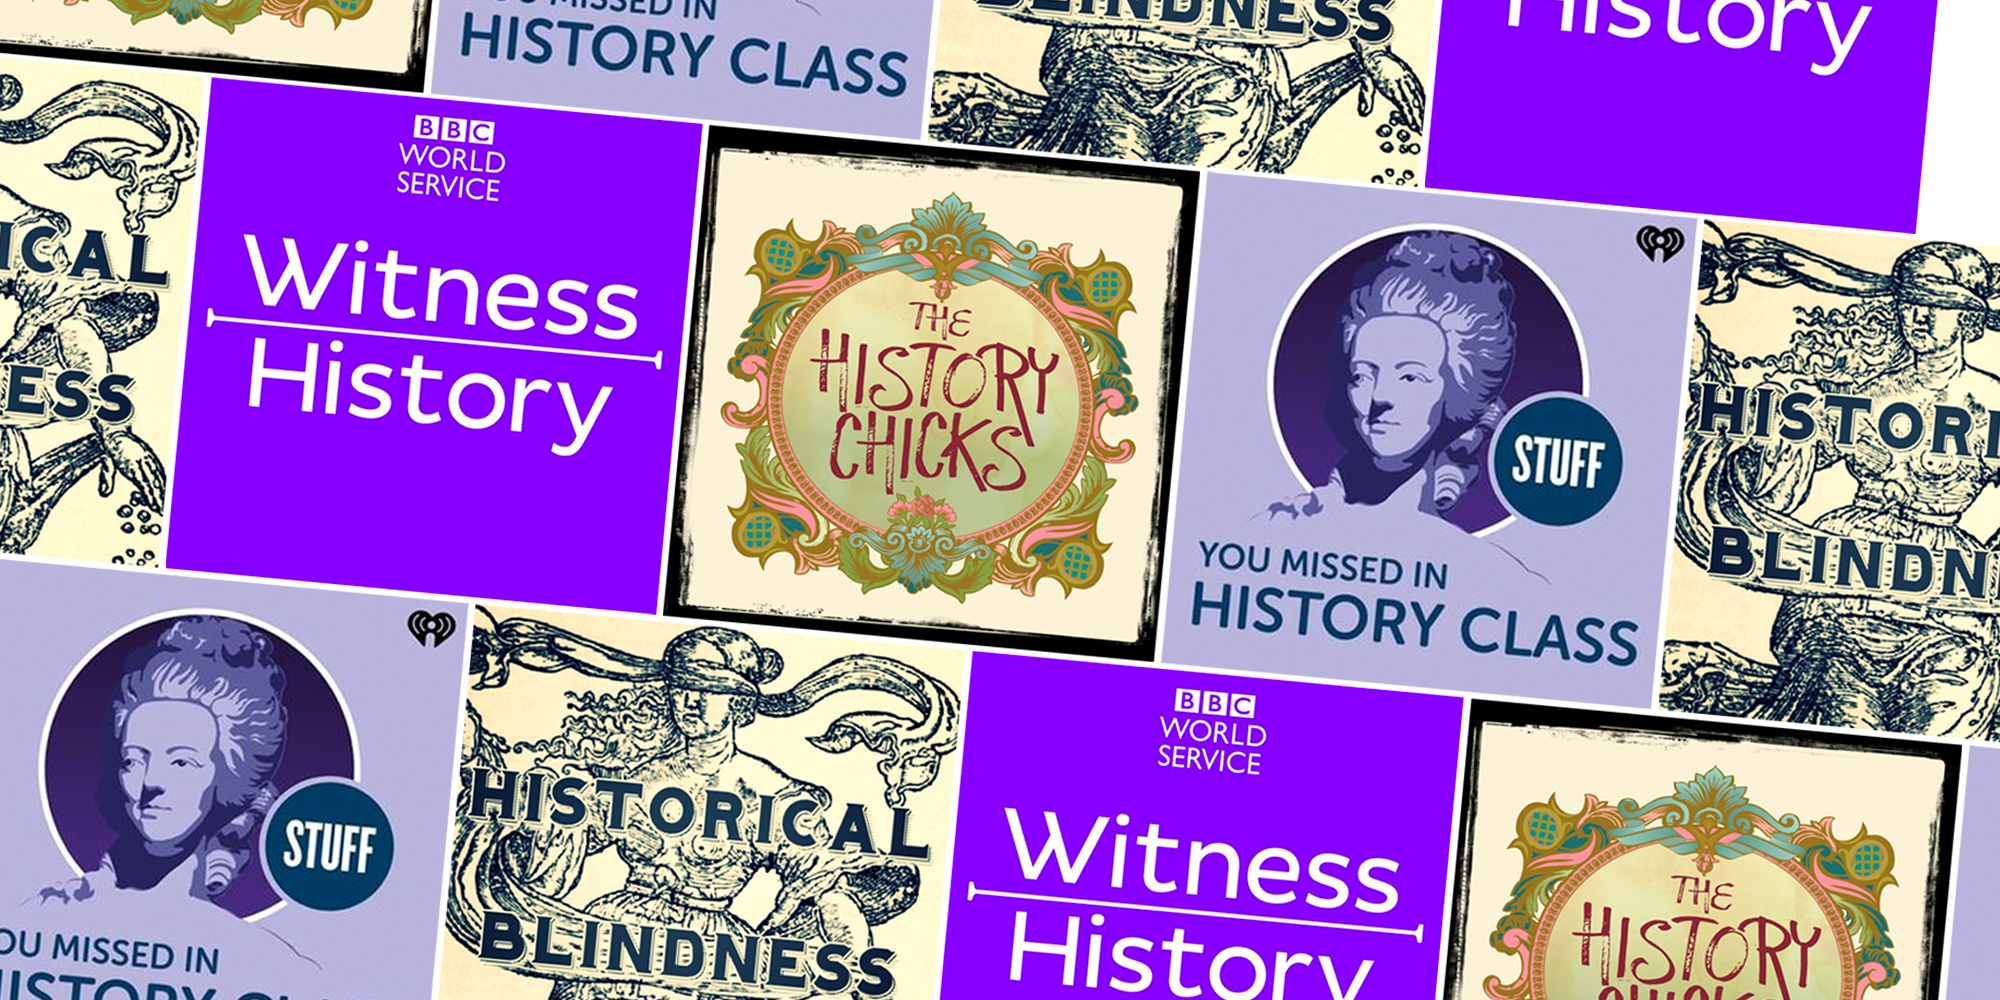 20 Best History Podcasts That'll Make You Rethink What You Learned in School